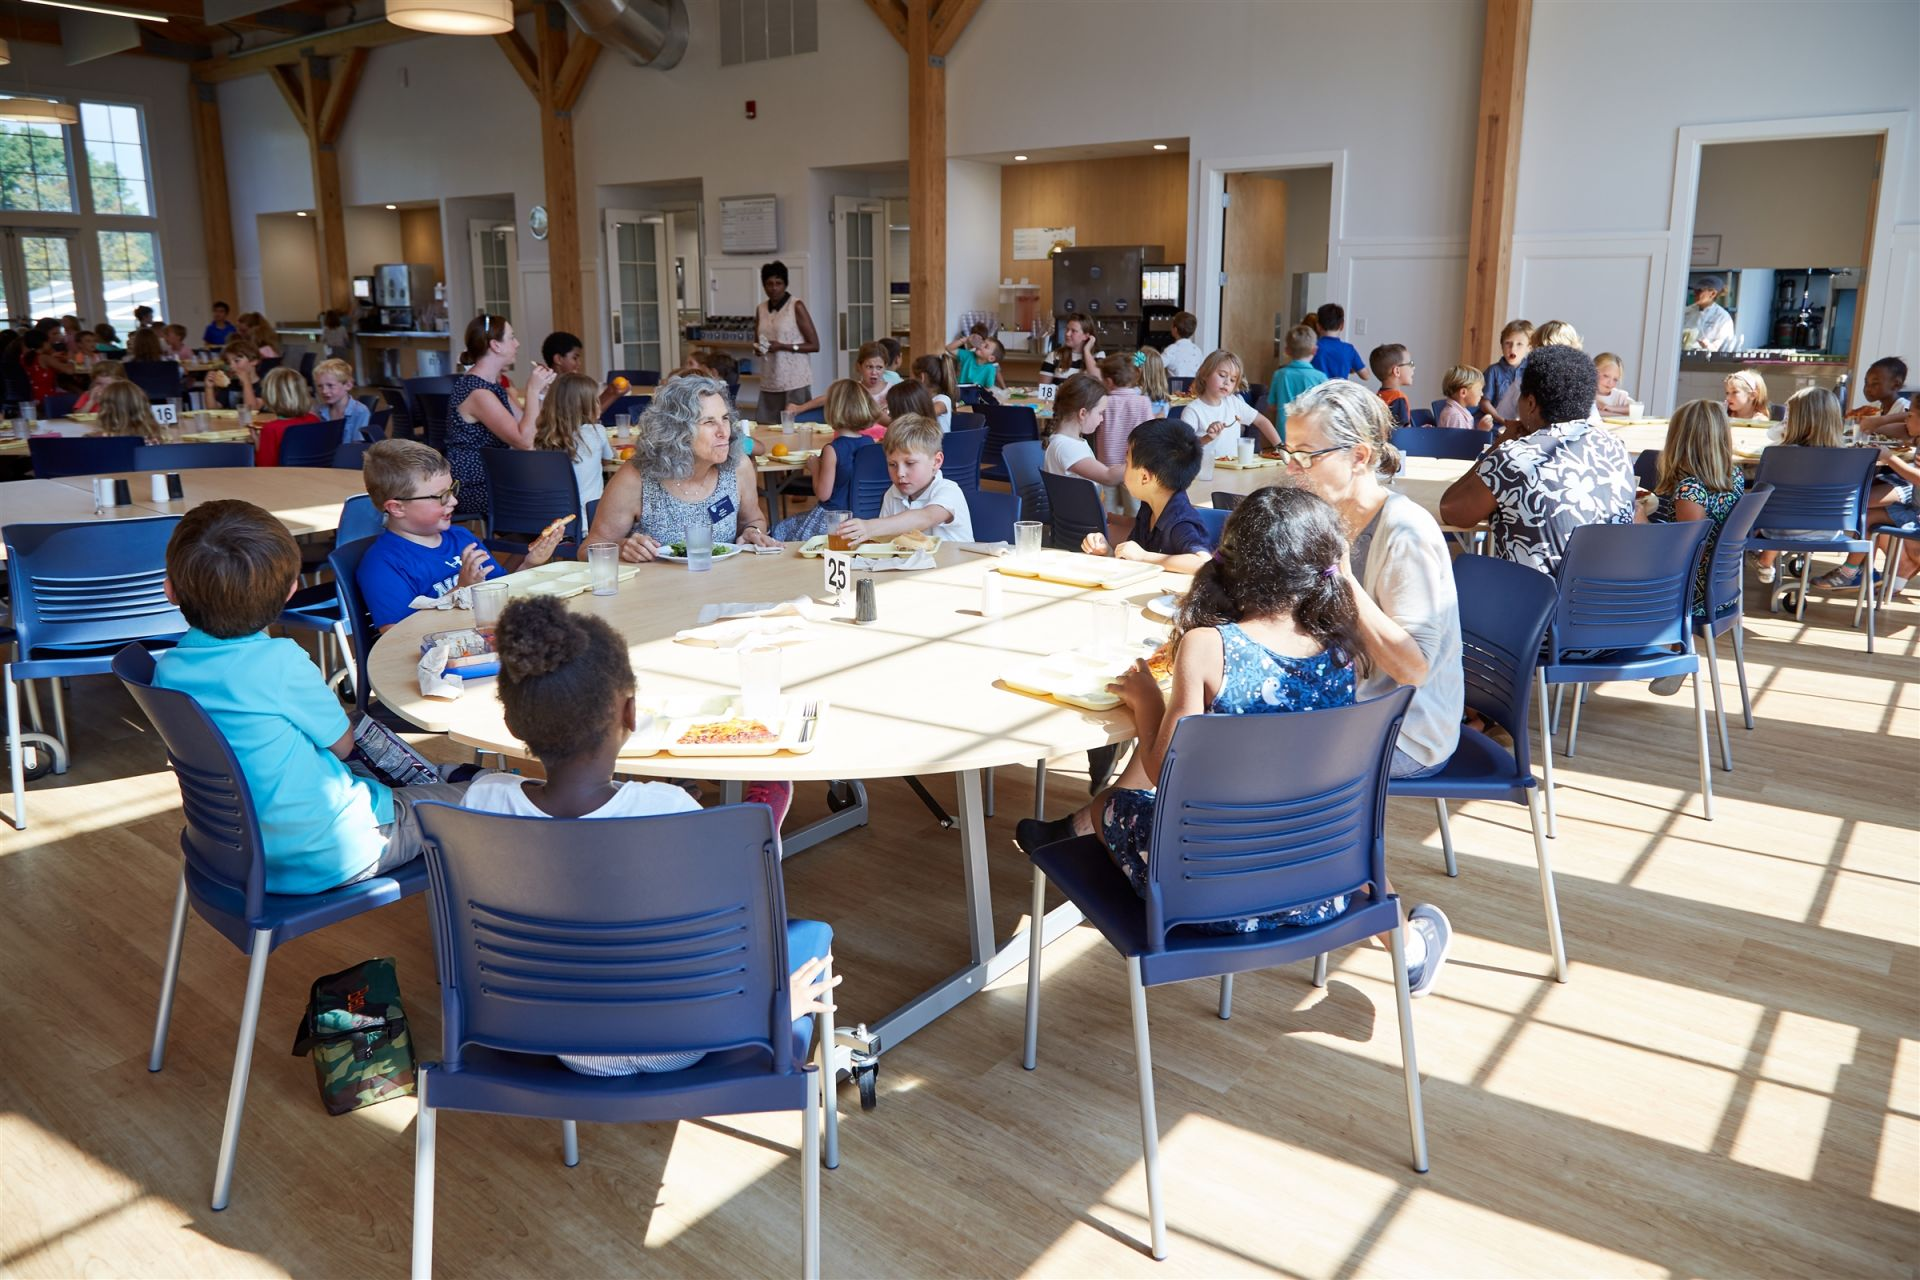 The Susan Haigh Carver '51 Dining Hall serves lunch to students in groups by grade level. The menu is varied and consists of fresh, local produce, organic and vegetarian selections, as well as the usual favorites. Teachers dine with the children in an atmosphere that encourages community.